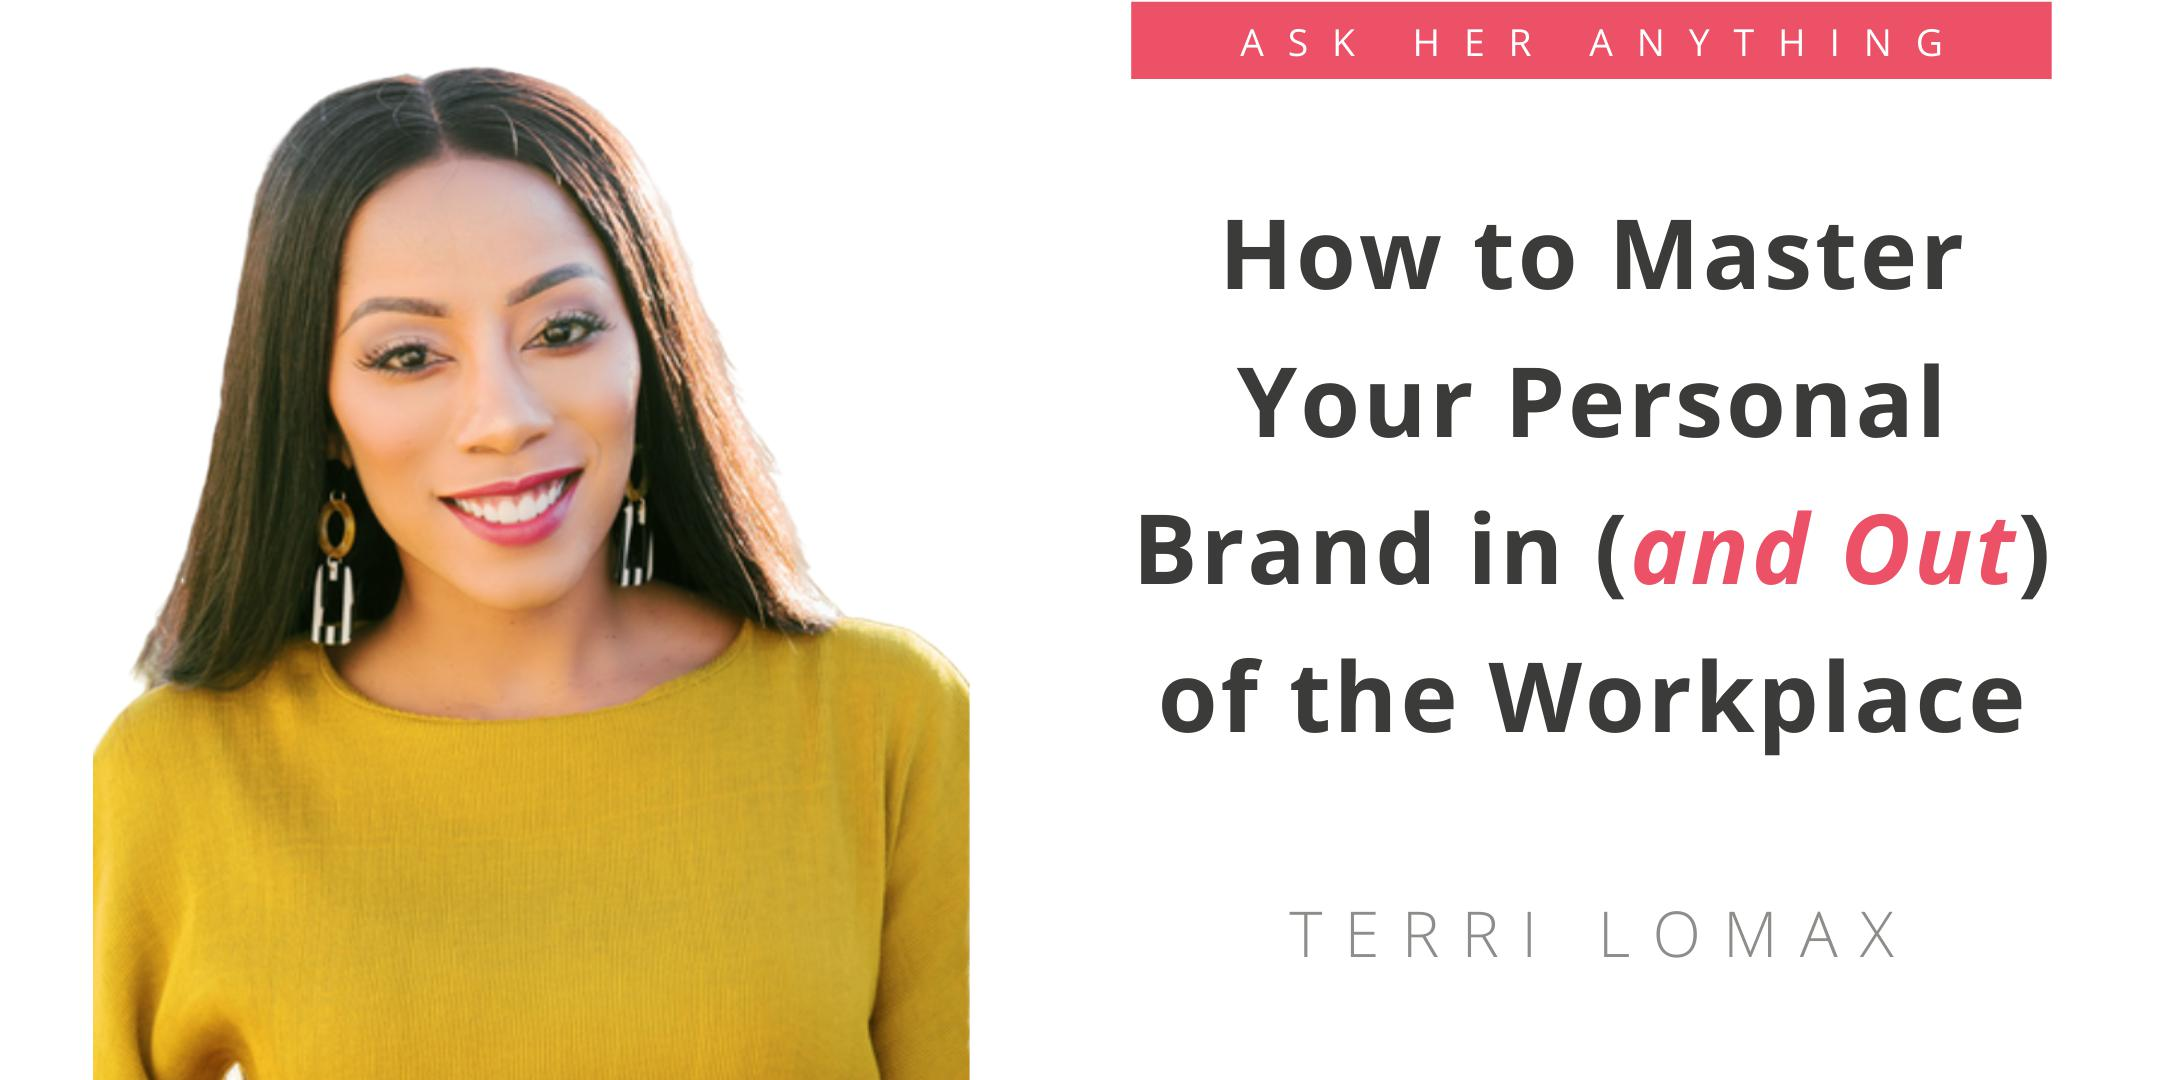 How to Master Your Personal Brand in (and Out) of the Workplace